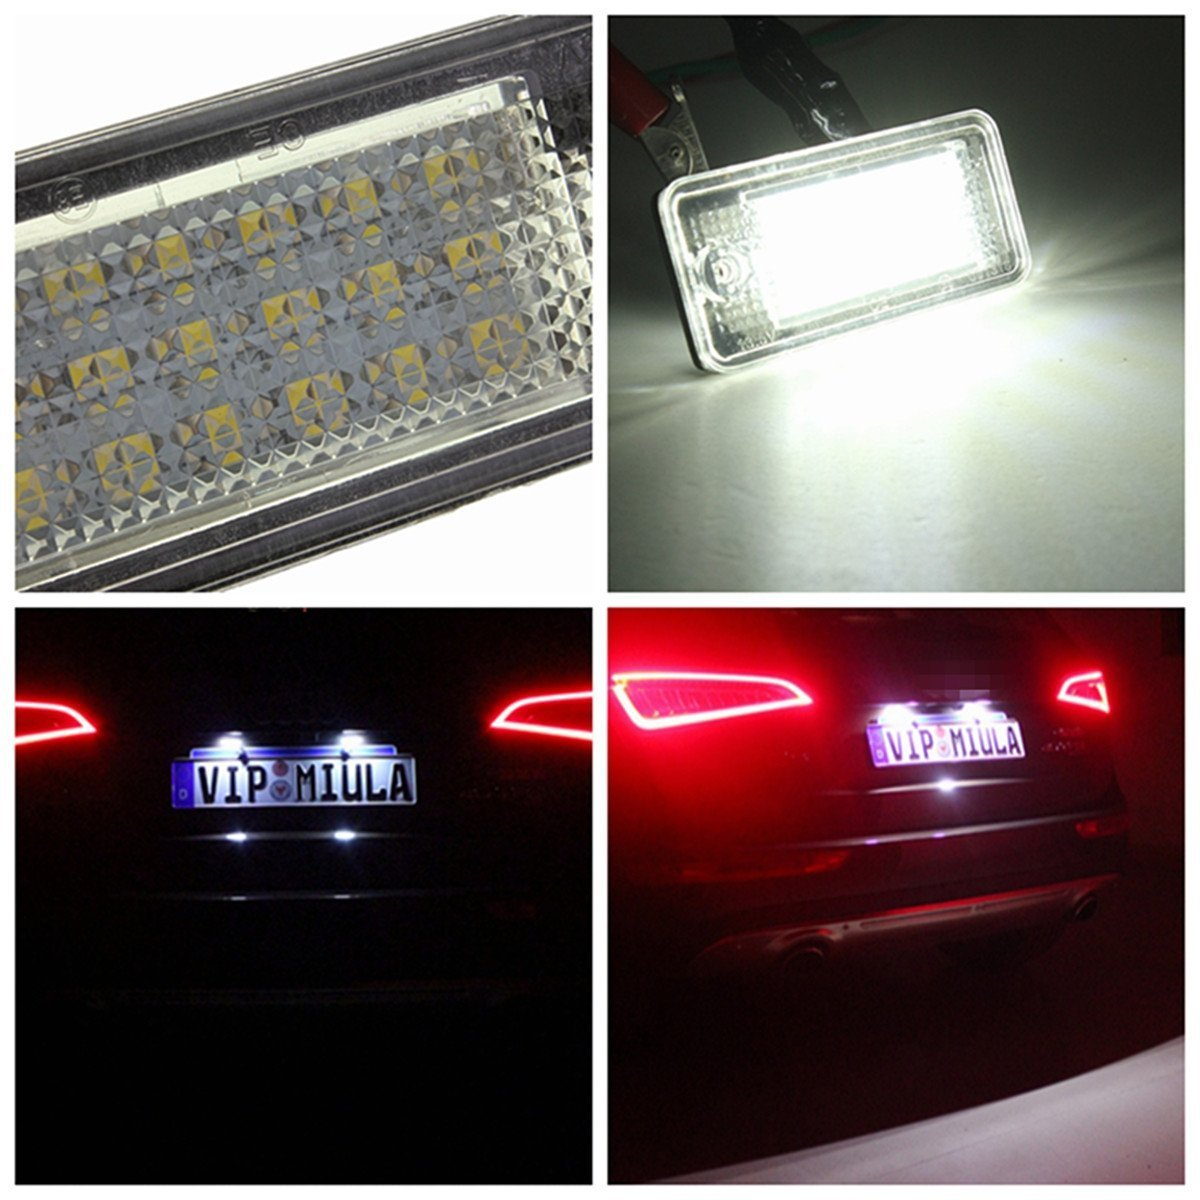 inlink da 2/ Pack 24/ LED SMD 3528/ Error Free Direct Replacement License Plate Light